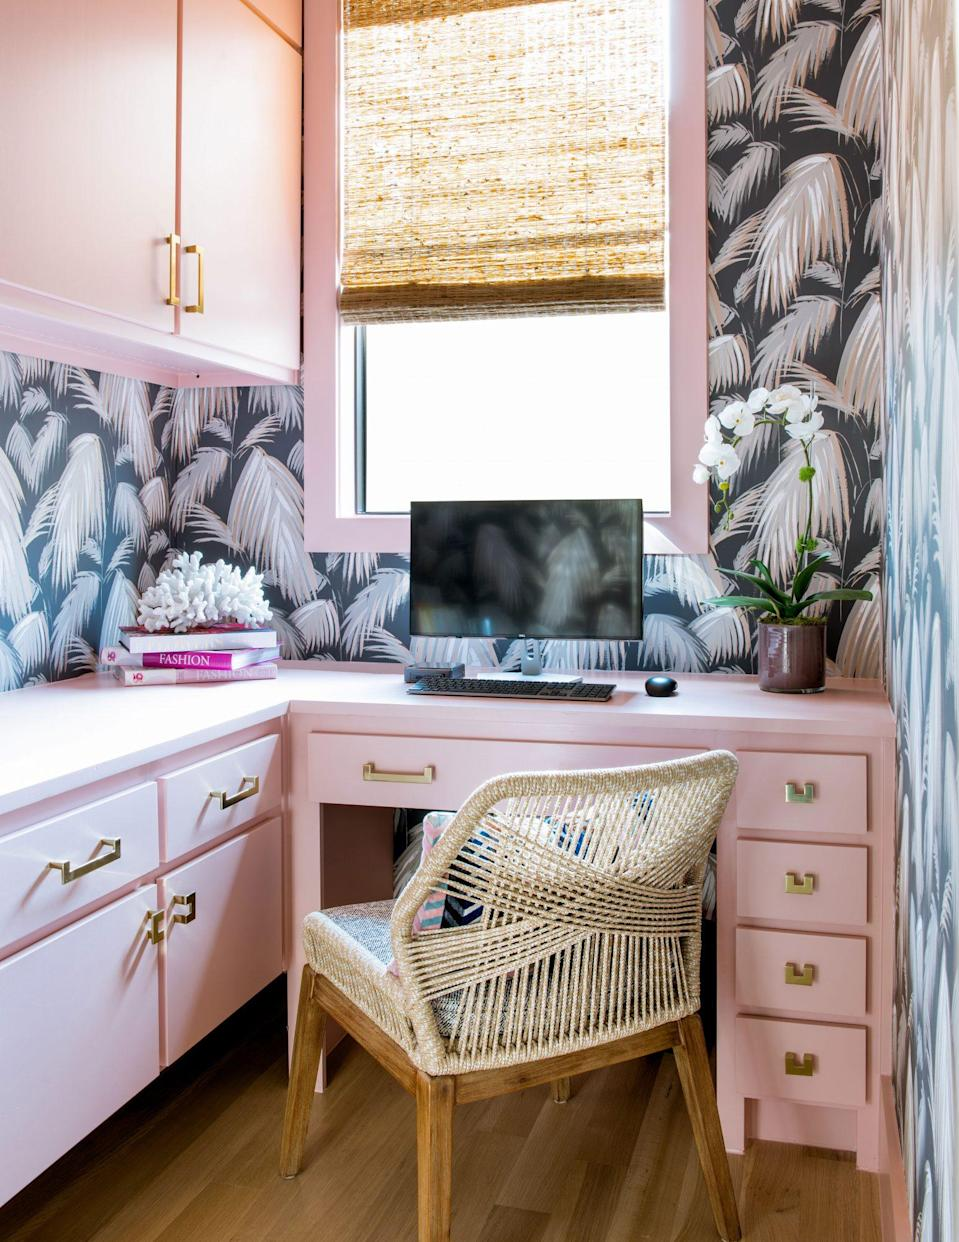 """<p>Vanderford and Jones encourage readers to have fun with color and pattern in tight quarters, too. """"While this space may be small, it is full of cheer. By selecting a light but glamorous <a href=""""https://www.benjaminmoore.com/en-us/color-overview/find-your-color/color/2173-50/coral-dust?color=2173-50"""" rel=""""nofollow noopener"""" target=""""_blank"""" data-ylk=""""slk:pink"""" class=""""link rapid-noclick-resp"""">pink</a> shade for this home workspace, we were able to create a powerful and bright interior that inspires you to get to work,"""" they say. """"We always suggest to our clients to select a bright color for smaller spaces; it's the perfect opportunity to be bold and show off your personality.""""</p>"""